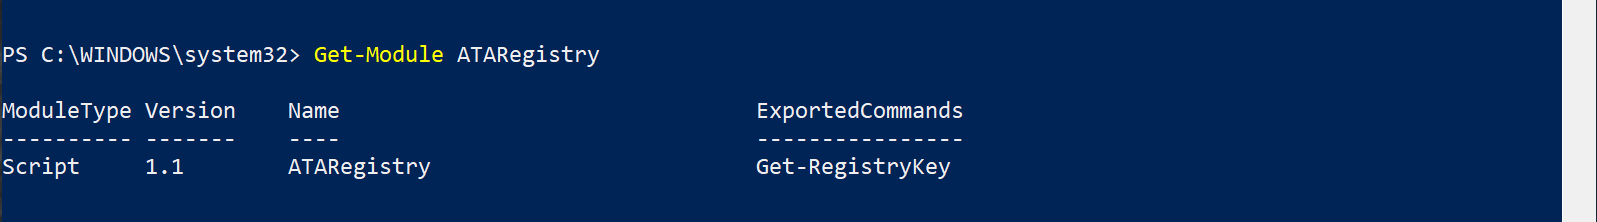 Exported commands now show up